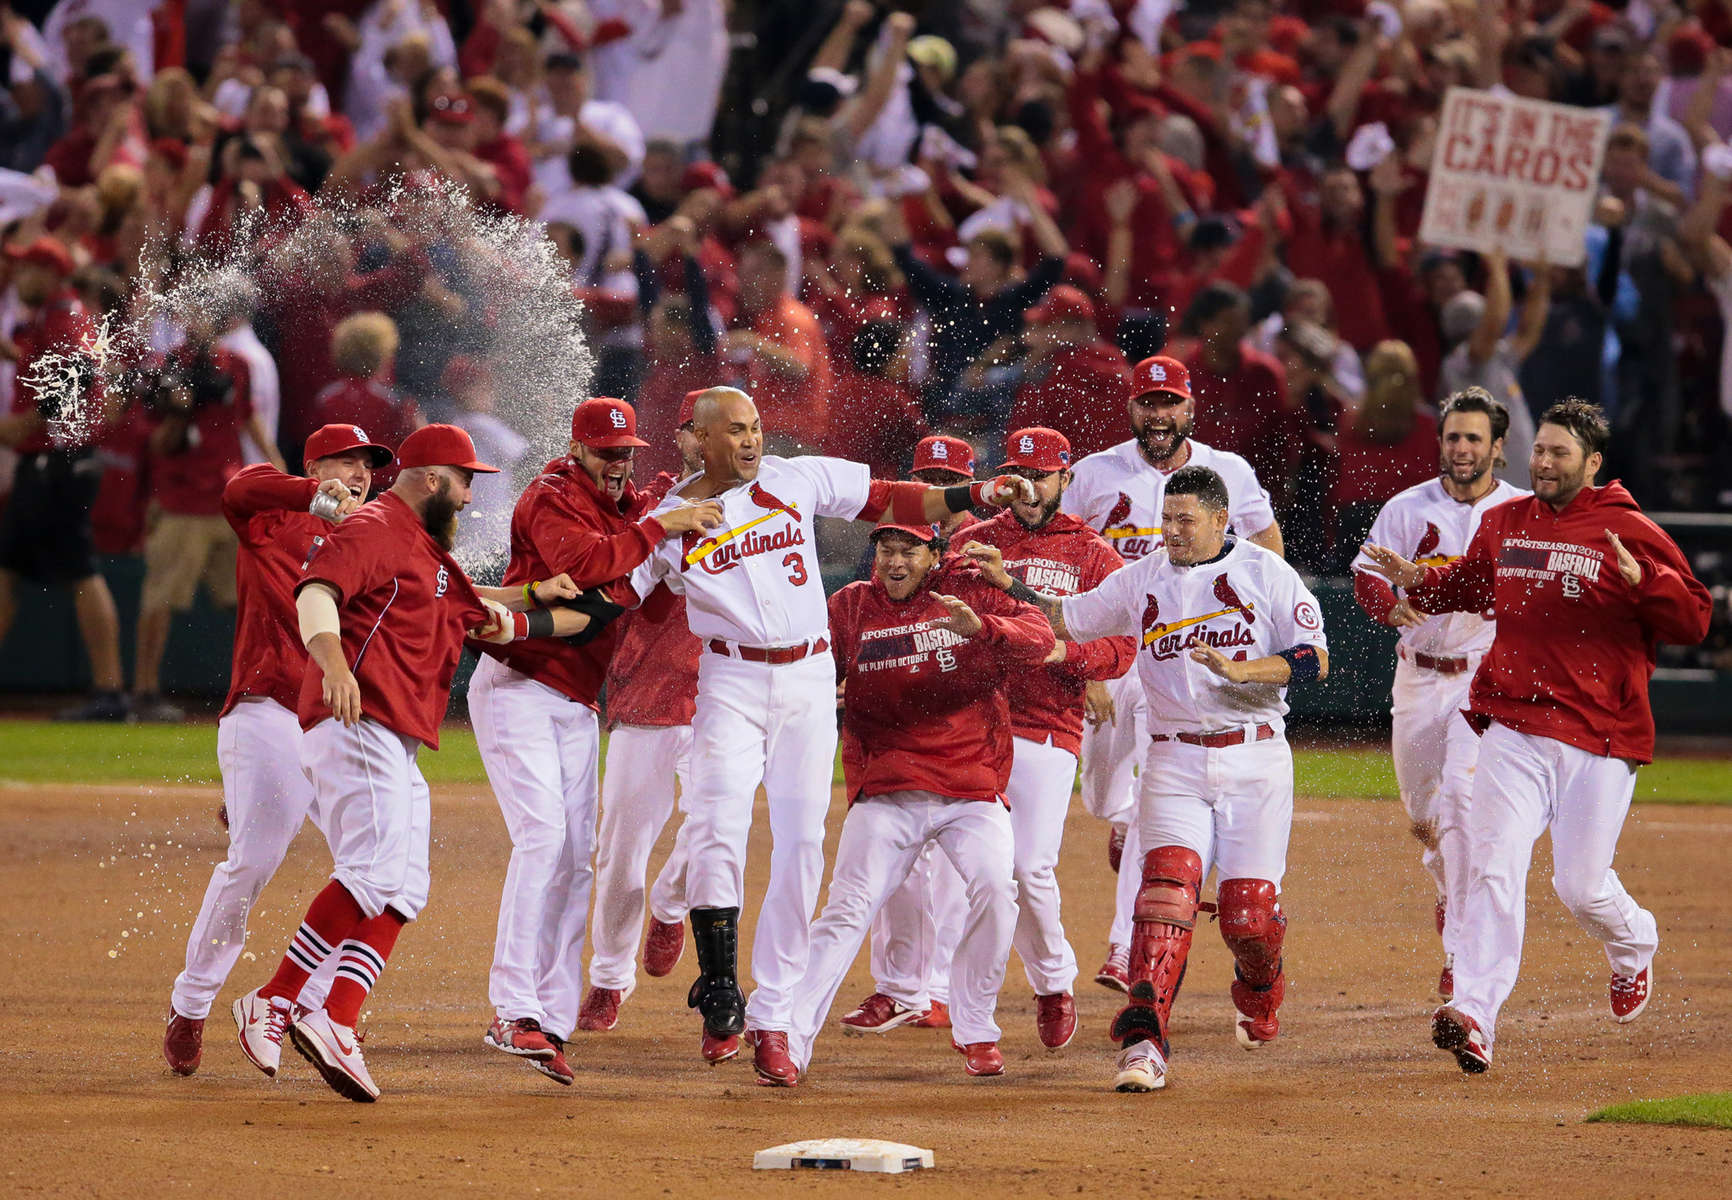 Carlos Beltran is mobbed by his teammates after connecting on the game inning hit in the 13th inning of Game 1 of the National League Championship Series between the St. Louis Cardinals and the Los Angels Dodgers on Friday, Oct. 11, 2013, at Busch Stadium in St. Louis.